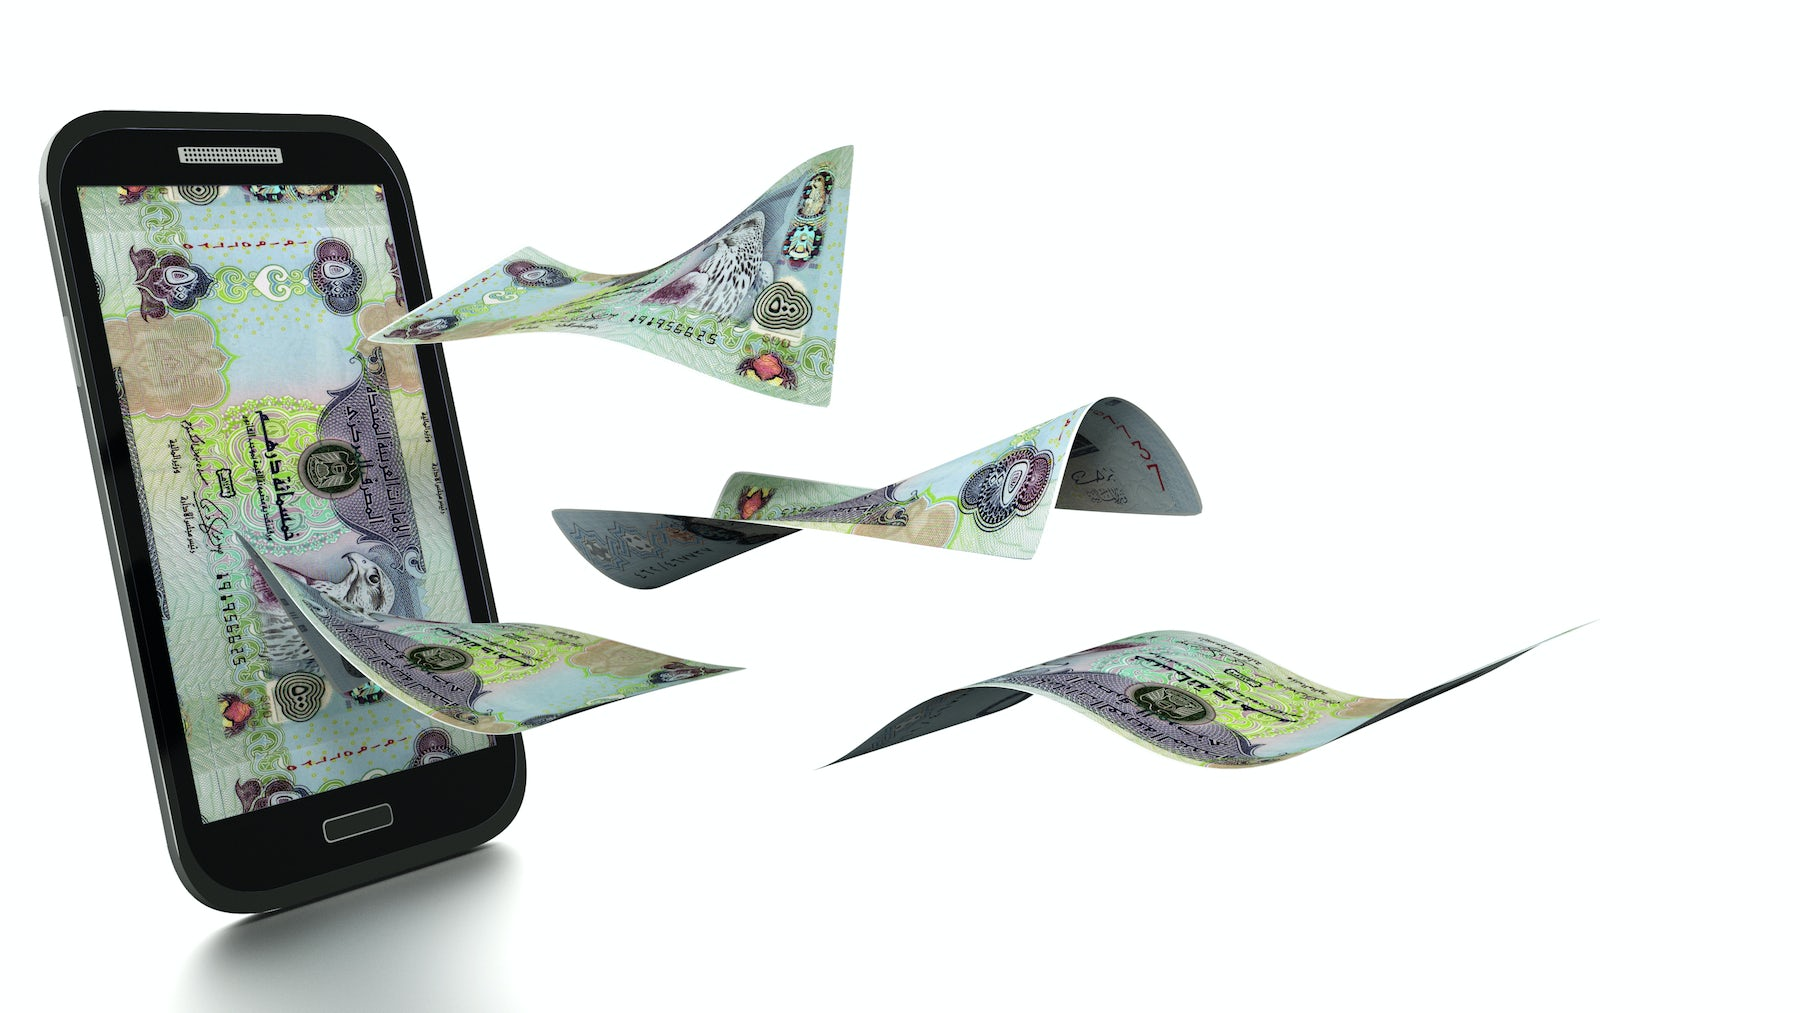 3D Rendered UAE Dirham | Source: Shutterstock